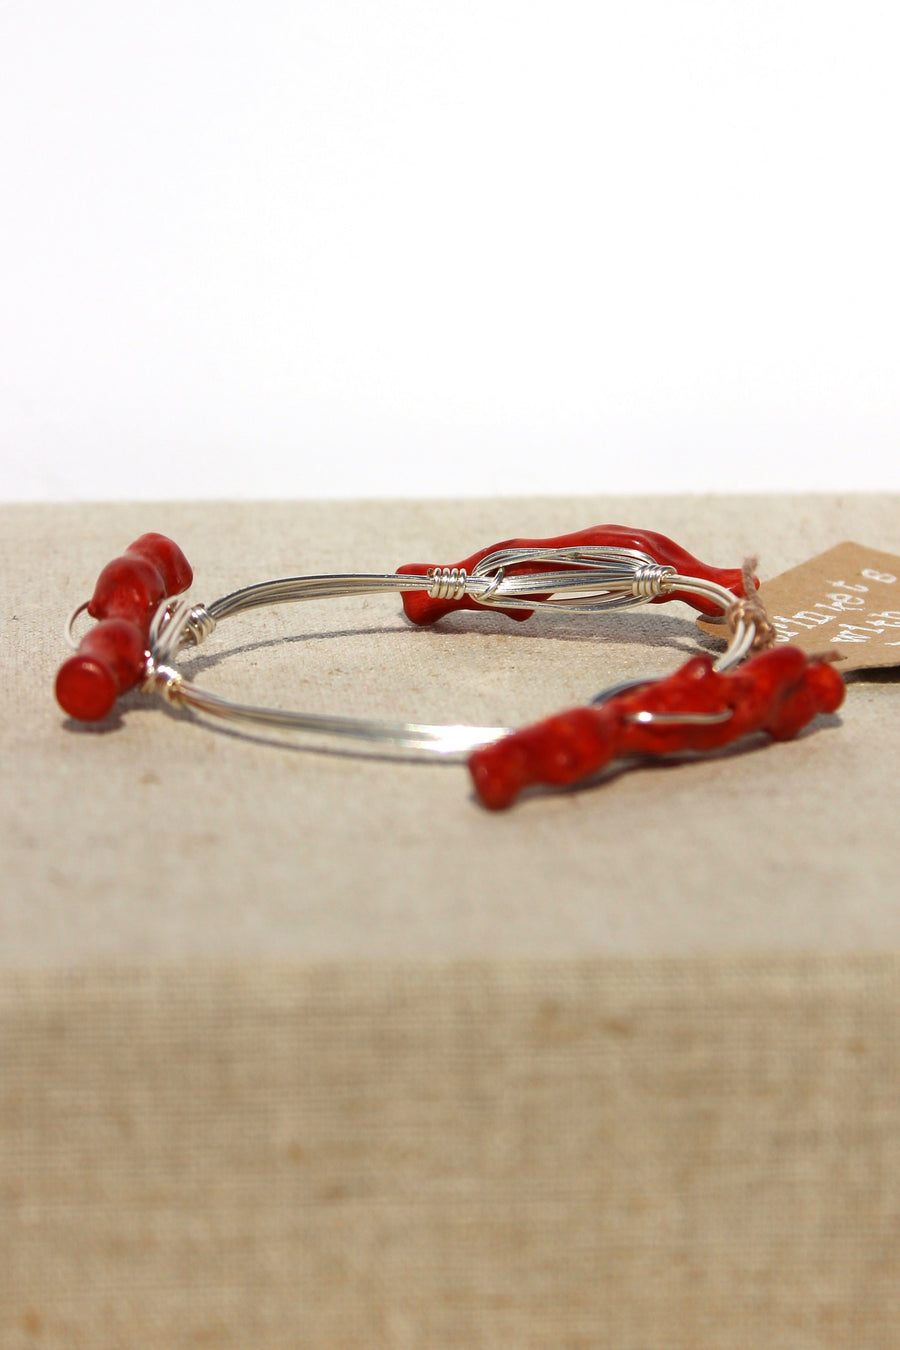 Coral Reef Bangle, Red